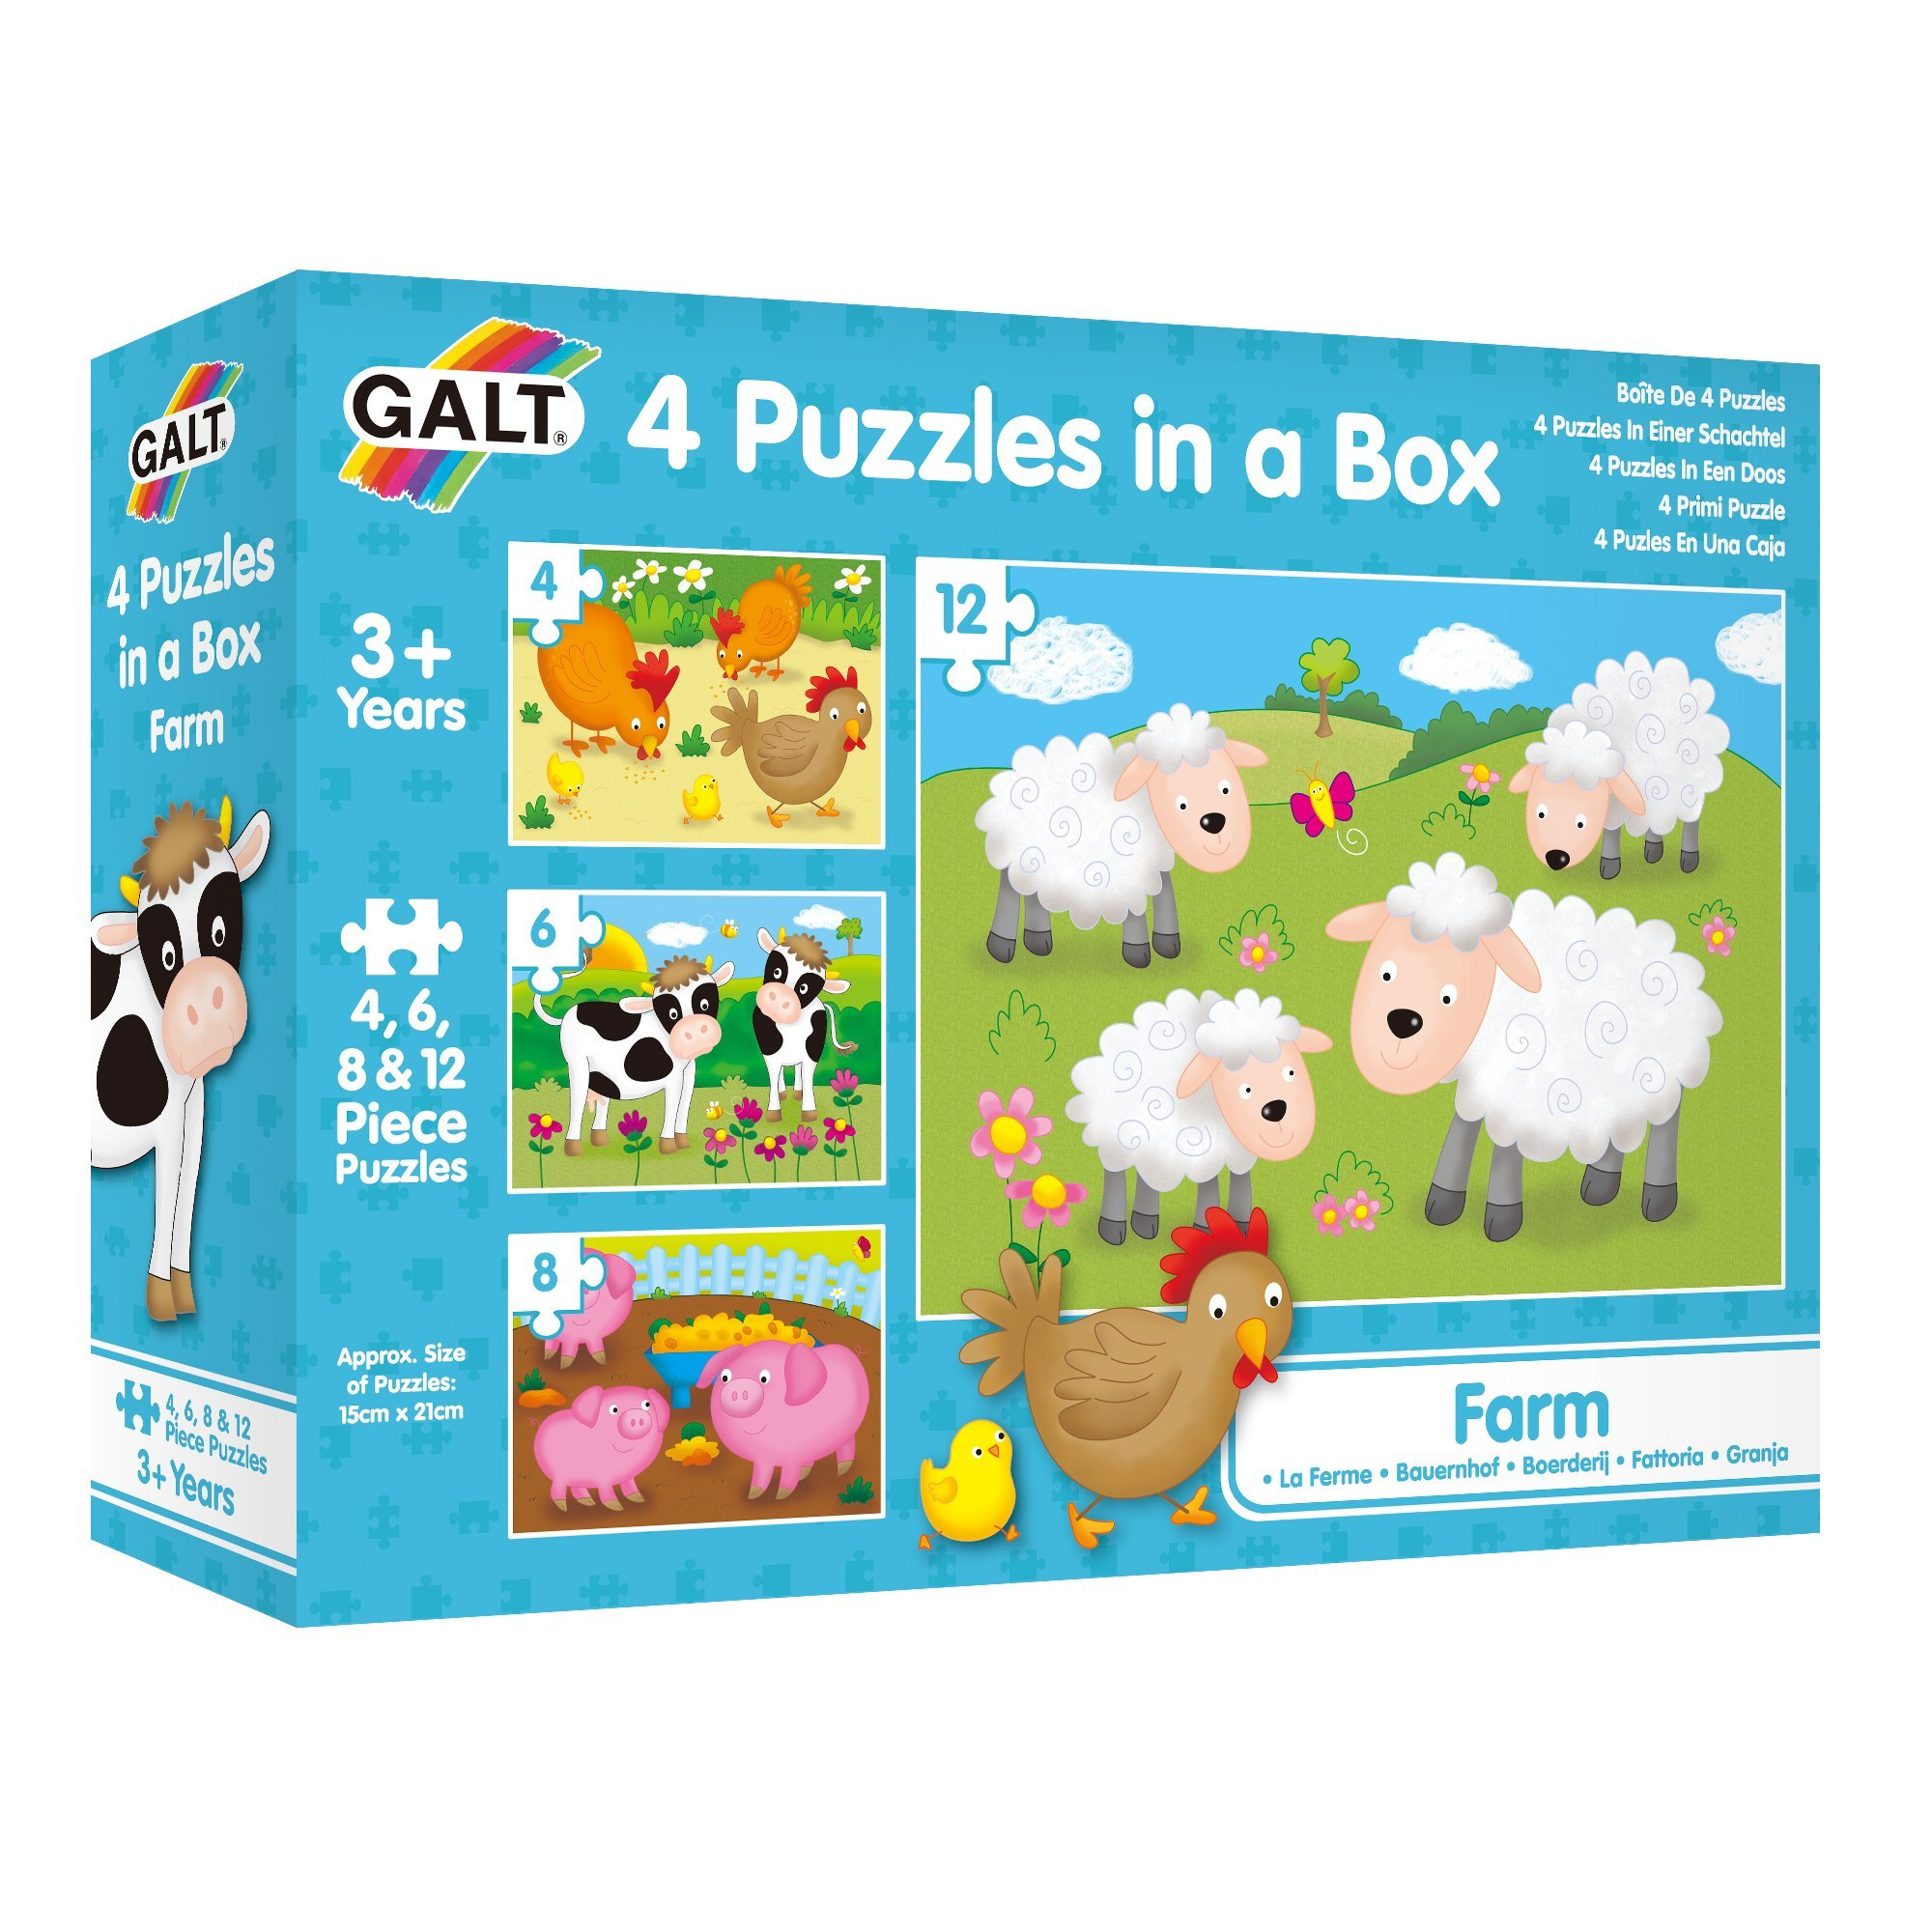 Galt 4 Puzzles in a Box - Farm Puzzle 3+